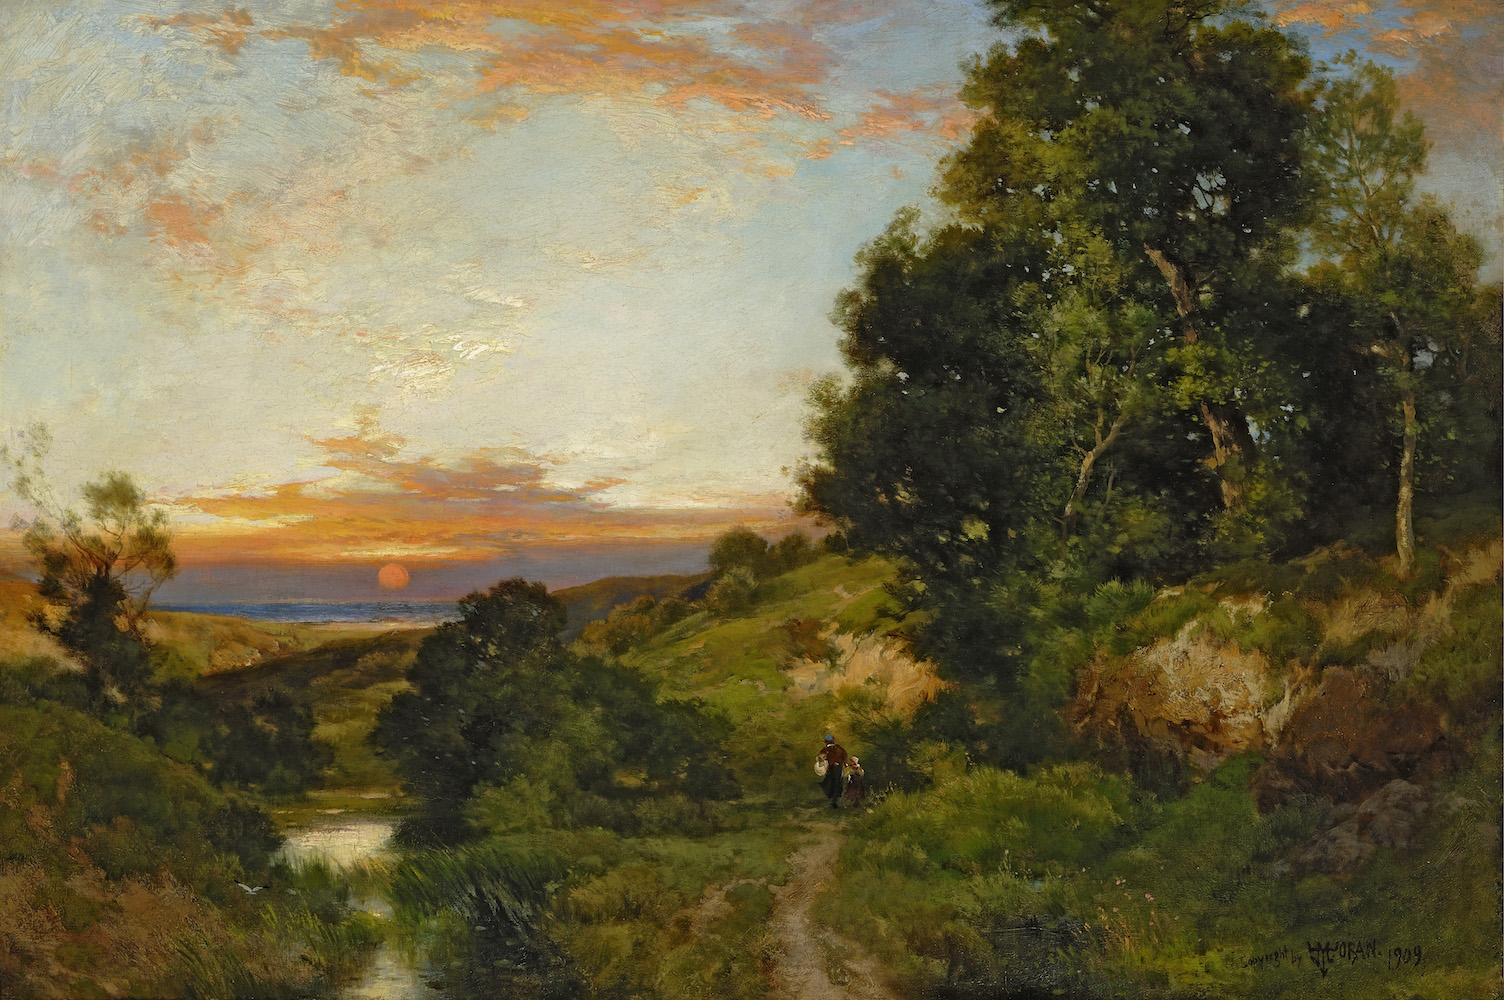 Thomas Moran (1837-1926), Glimpse of the Sea, Near Amagansett, L.I., 1909 (A Late Summer Afternoon) Oil on canvas 20 1/8 x 30 1/8 image: gary mamay, courtesy of guild hall museum